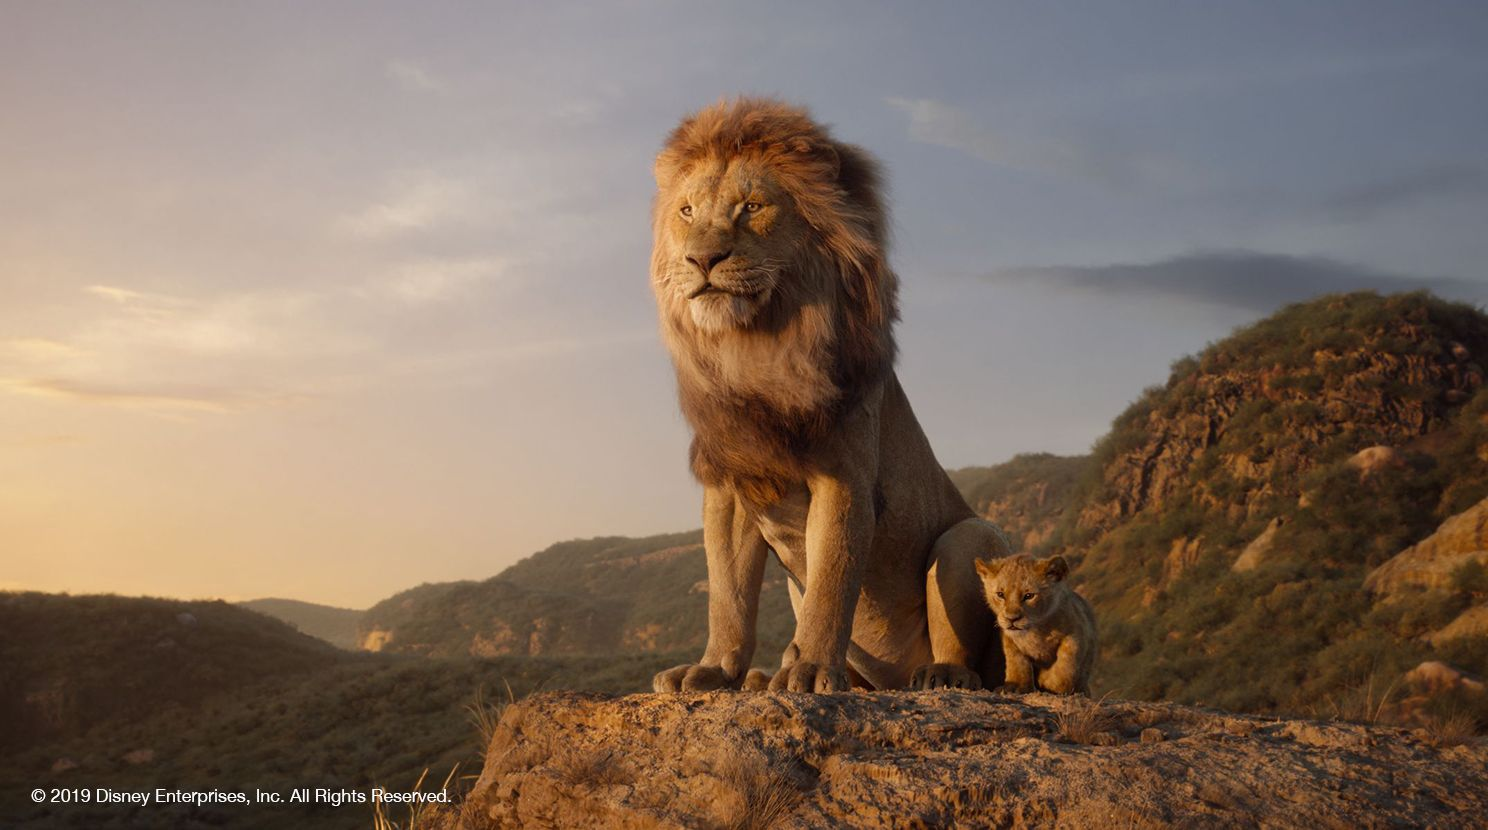 Disney's The Lion King promotional image